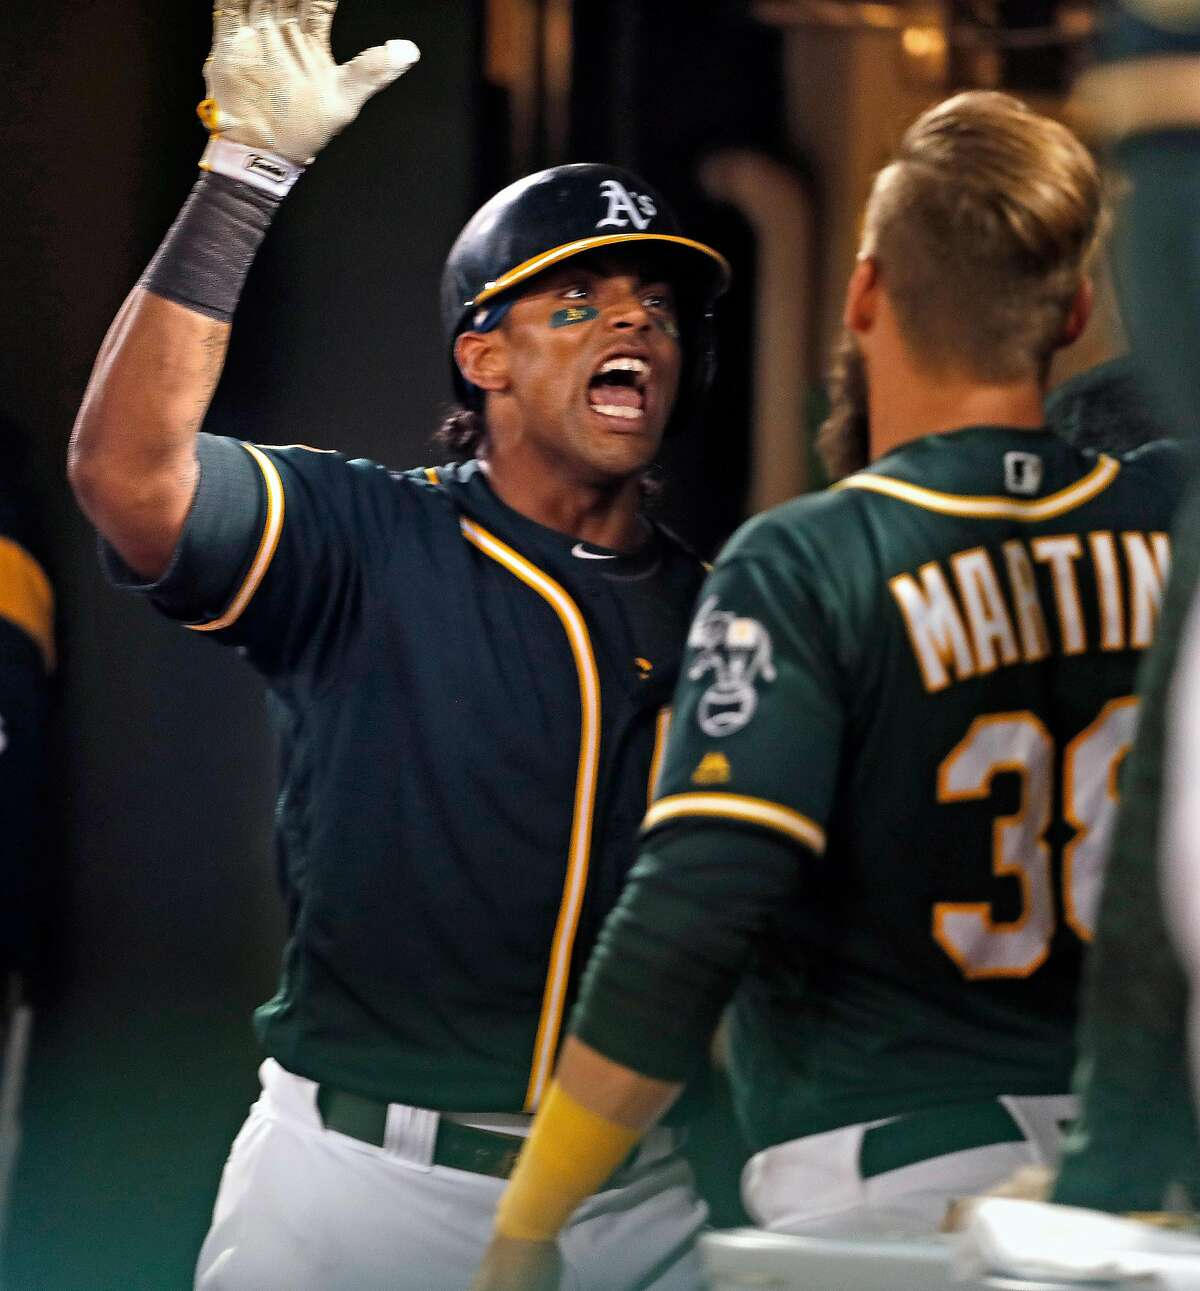 Oakland Athletics' Khris Davis celebrates with Nick Martini after Davis' 2-run home run in 7th inning against Texas Rangers during MLB game at Oakland Coliseum in Oakland, Calif. on Tuesday, August 21, 2018.